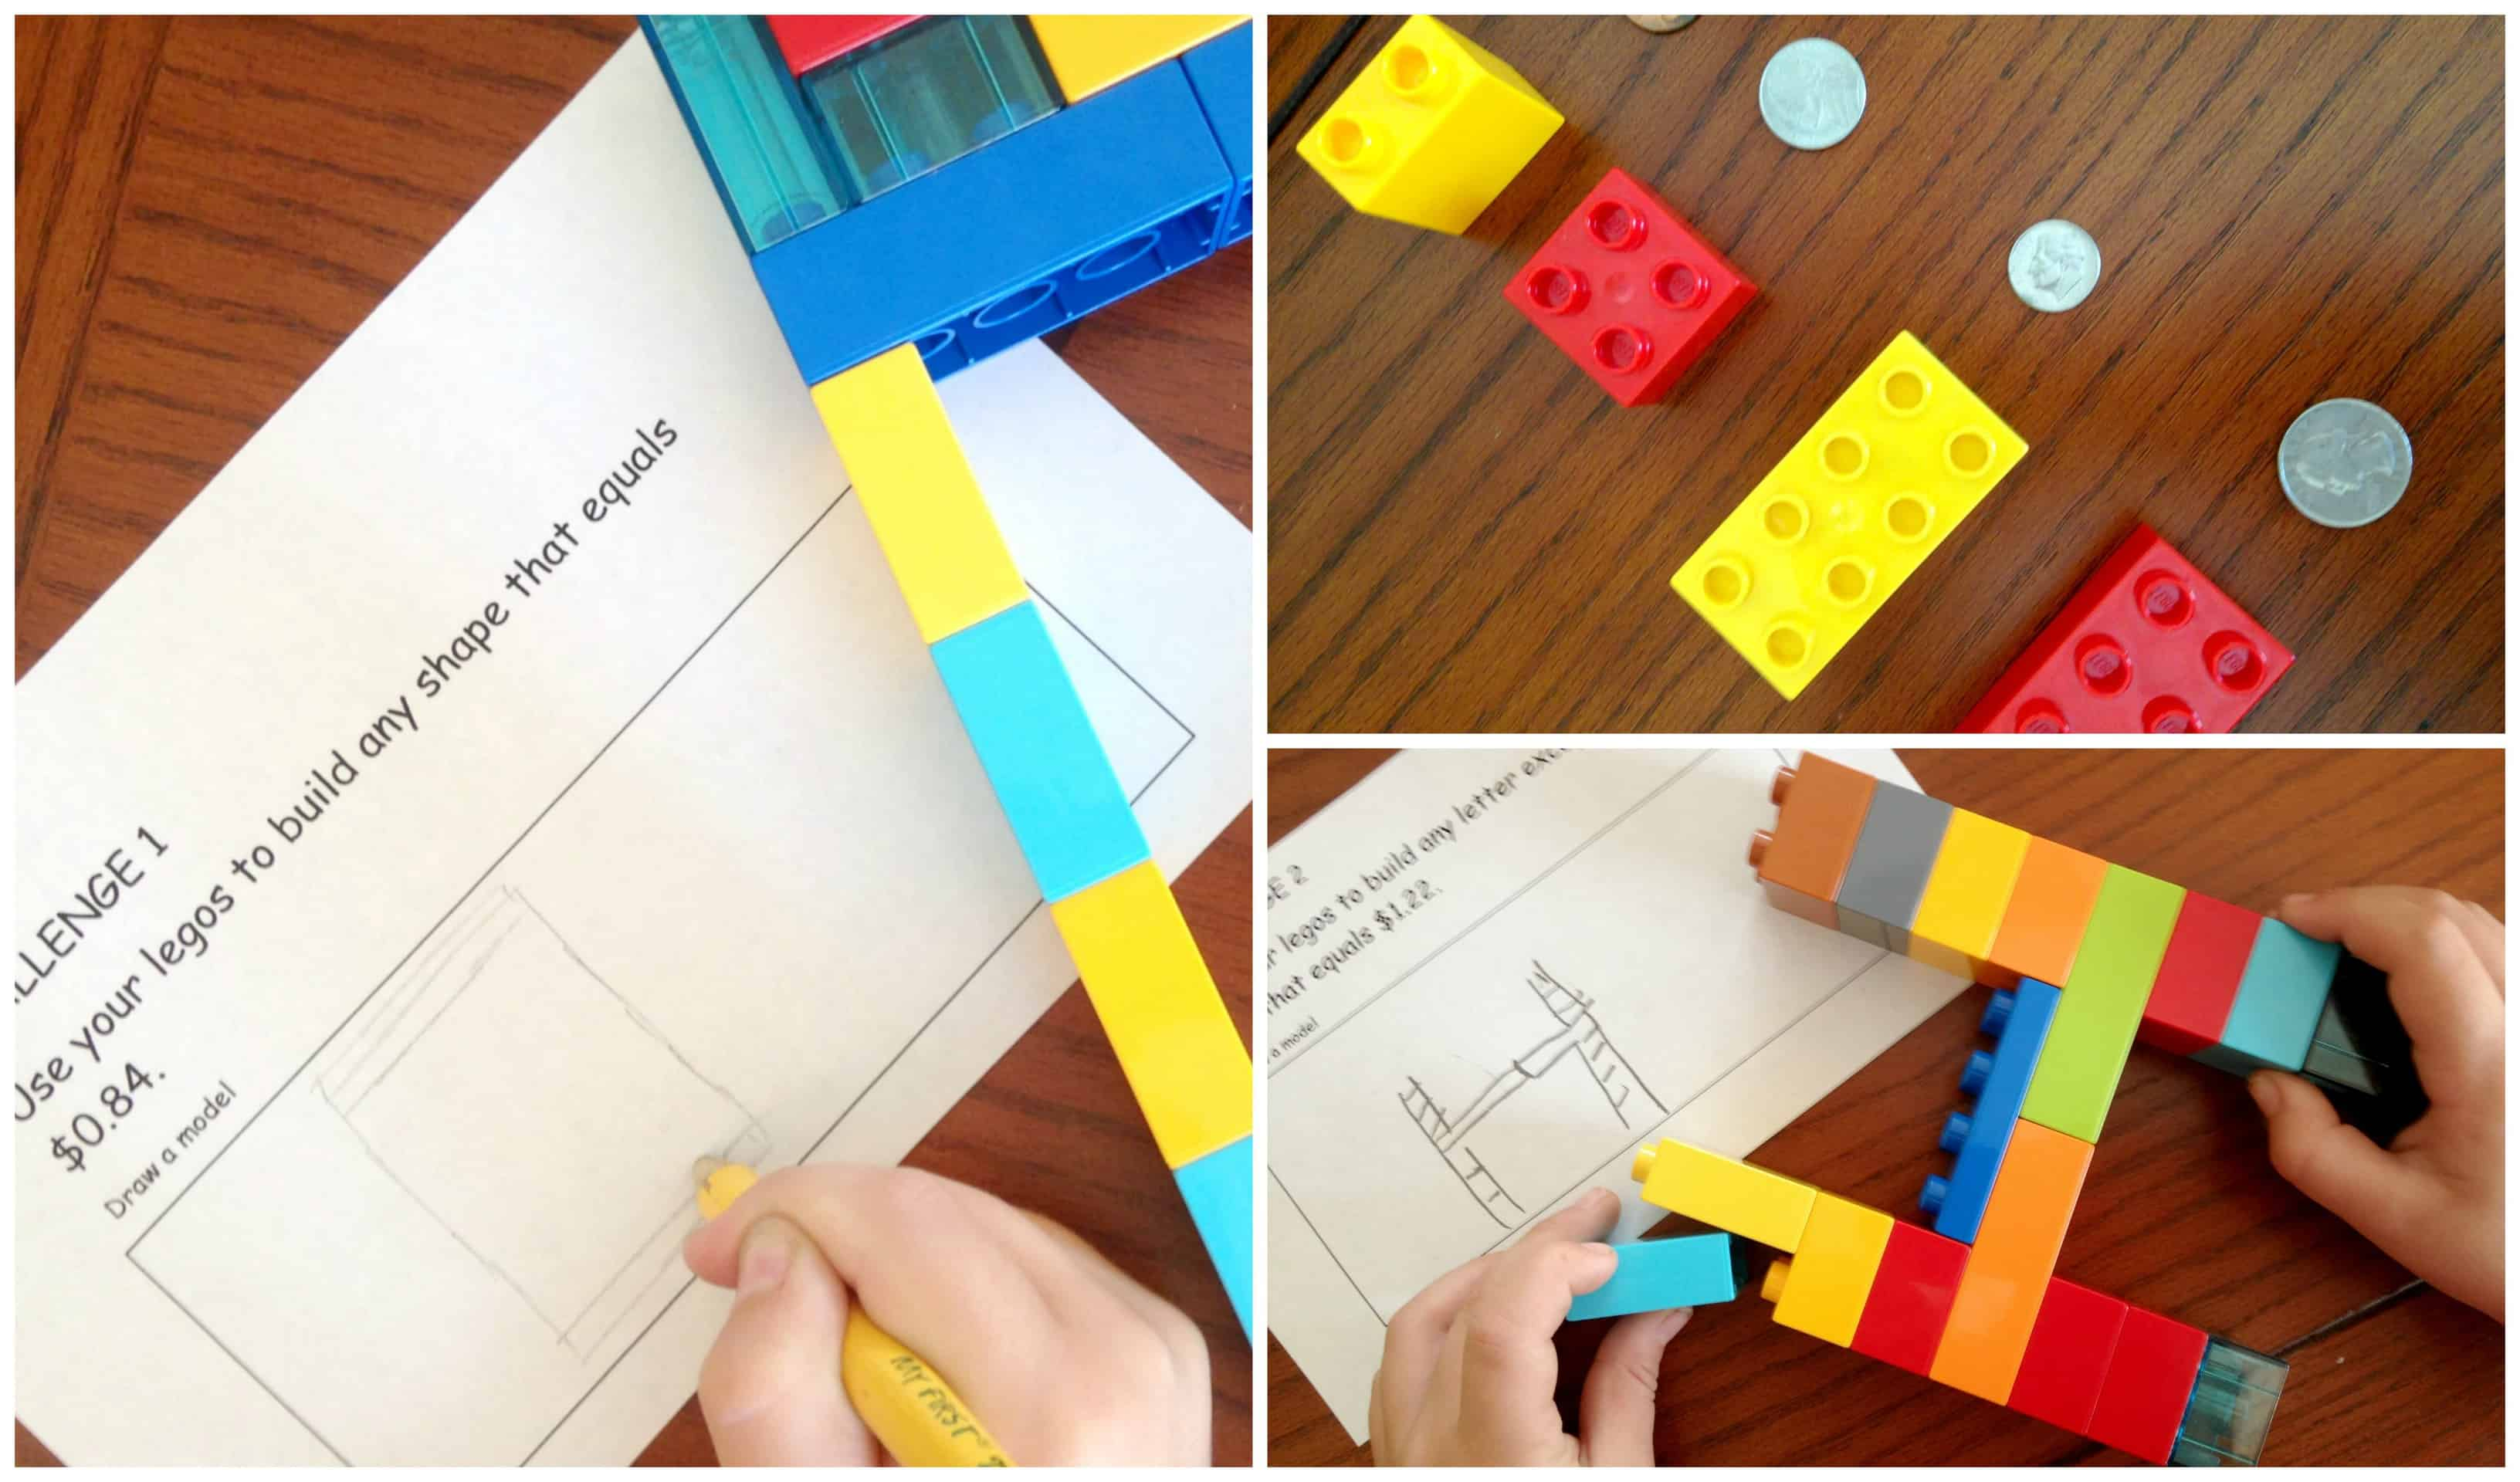 How To Use Lego To Practice Money Skills Stem Project